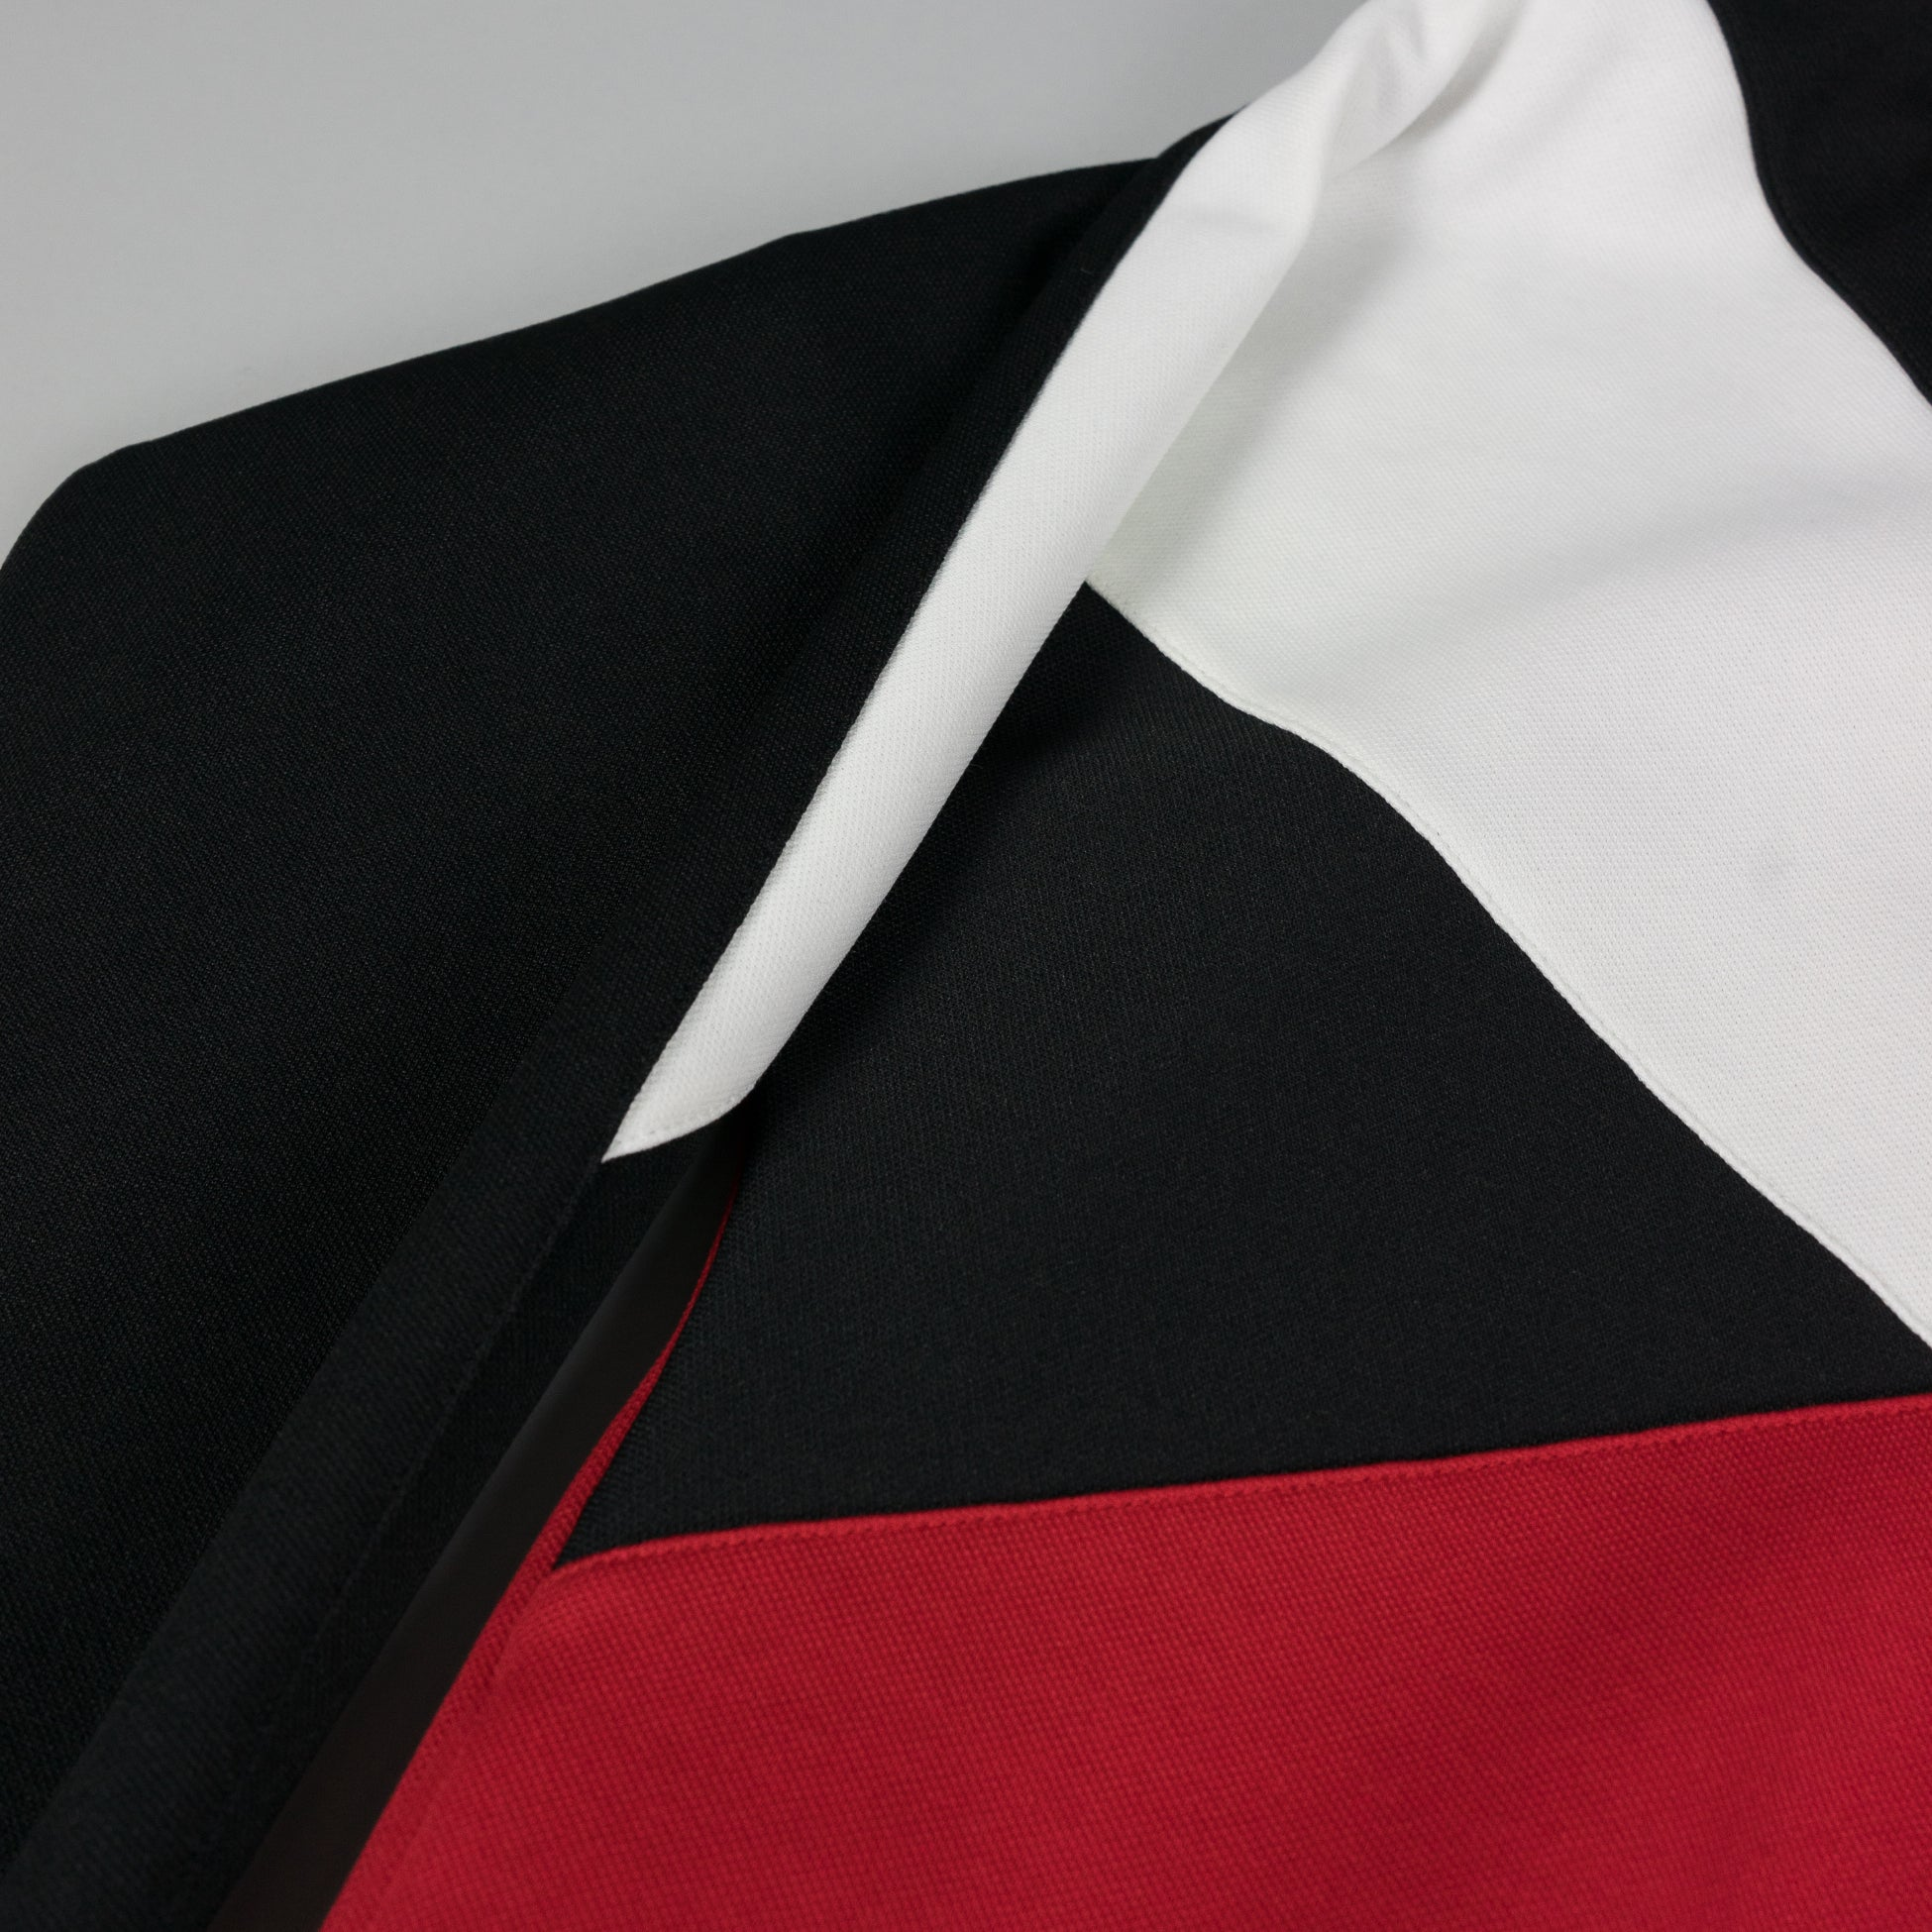 Close up detail of Maison Margiela Track Jacket in black, red, and white at ROOTED